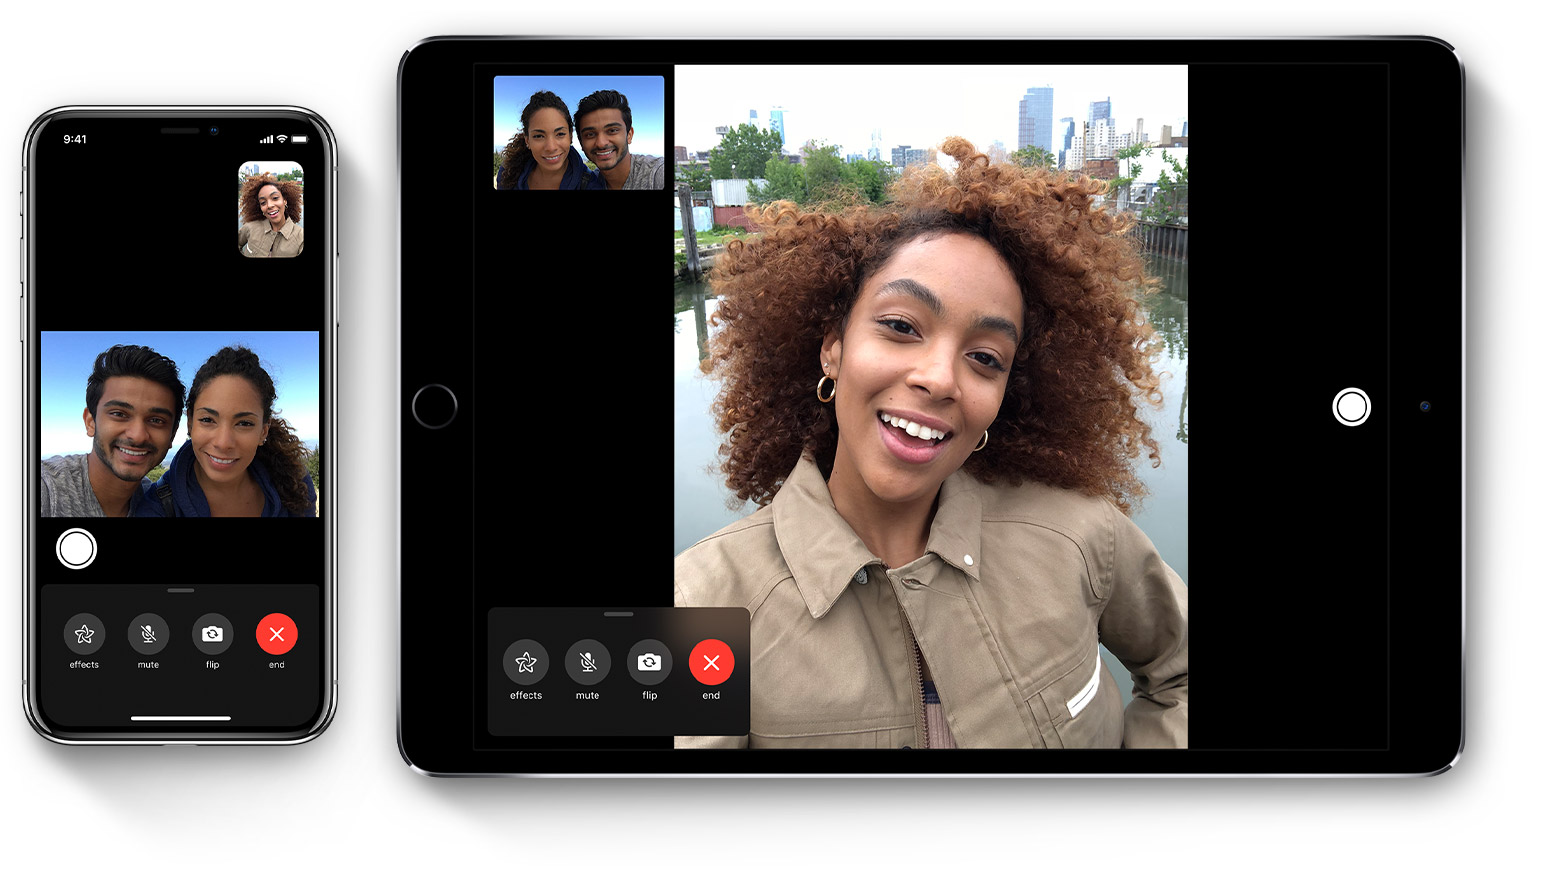 Apple's Group FaceTime is still having issues after recent